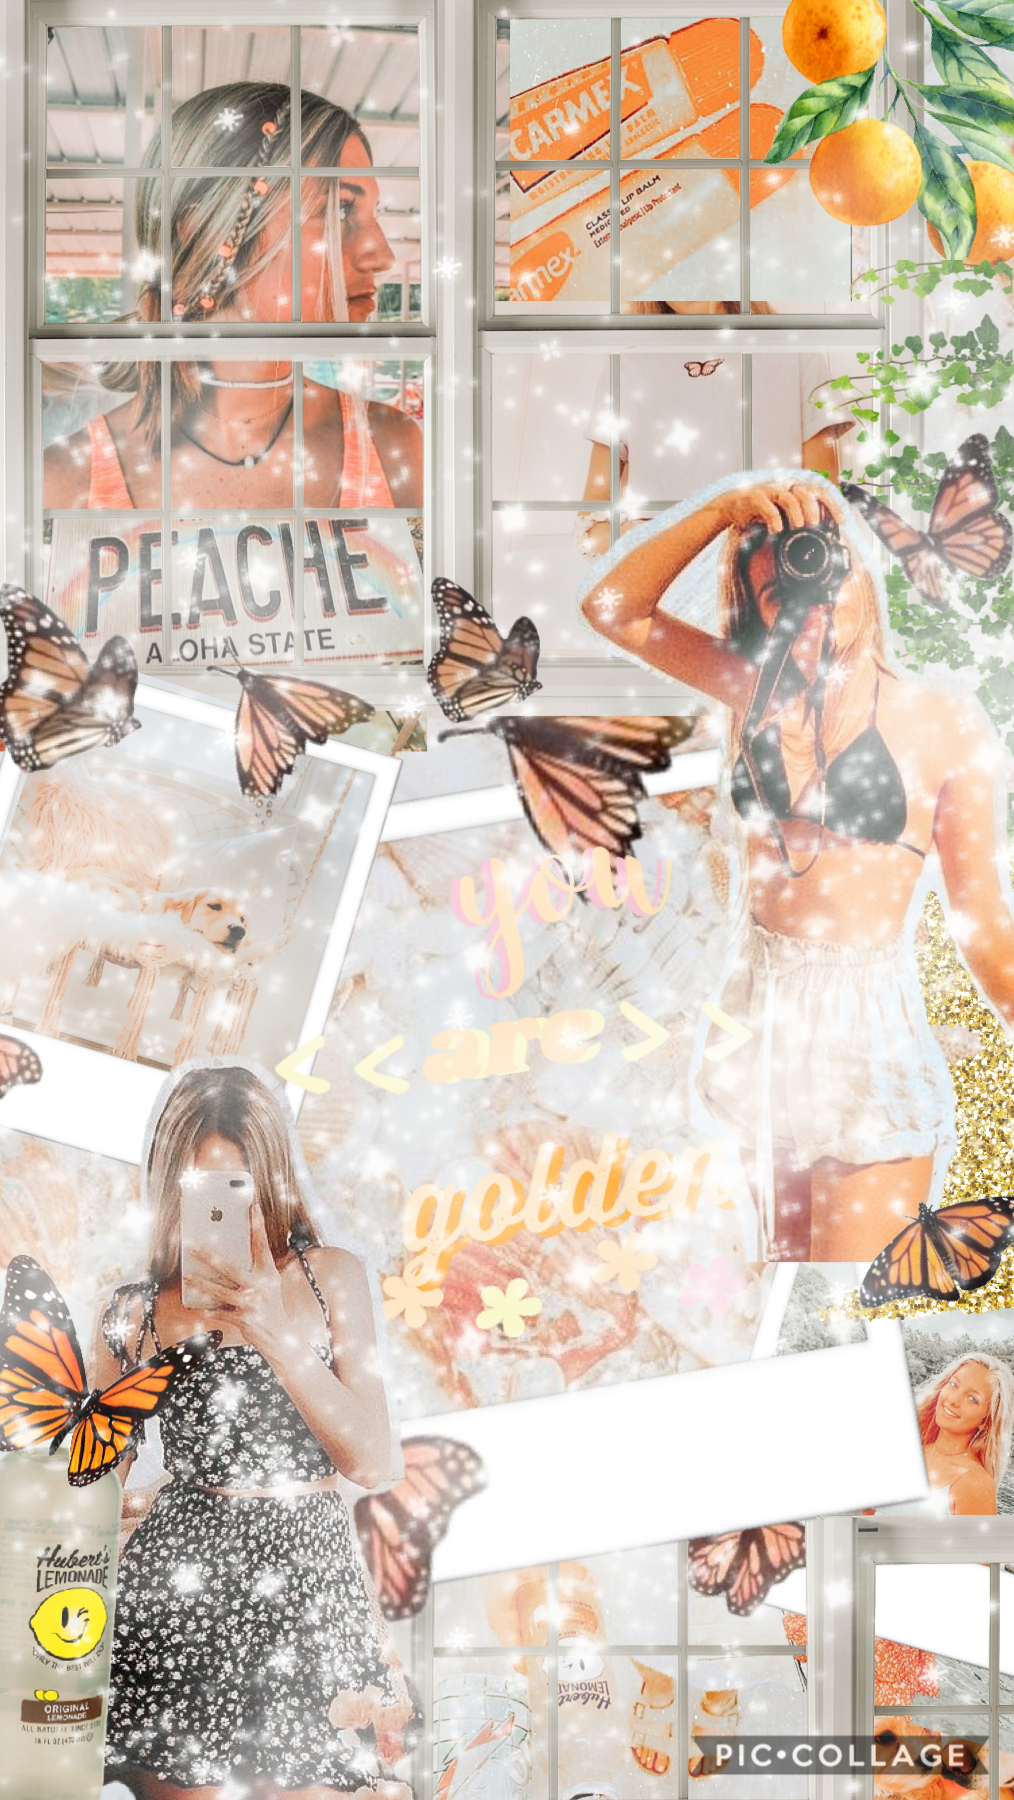 🦋tap🦋 7/31/20 this was inspired by dreaming happily i really like how it turned out! should i do more collages like these??